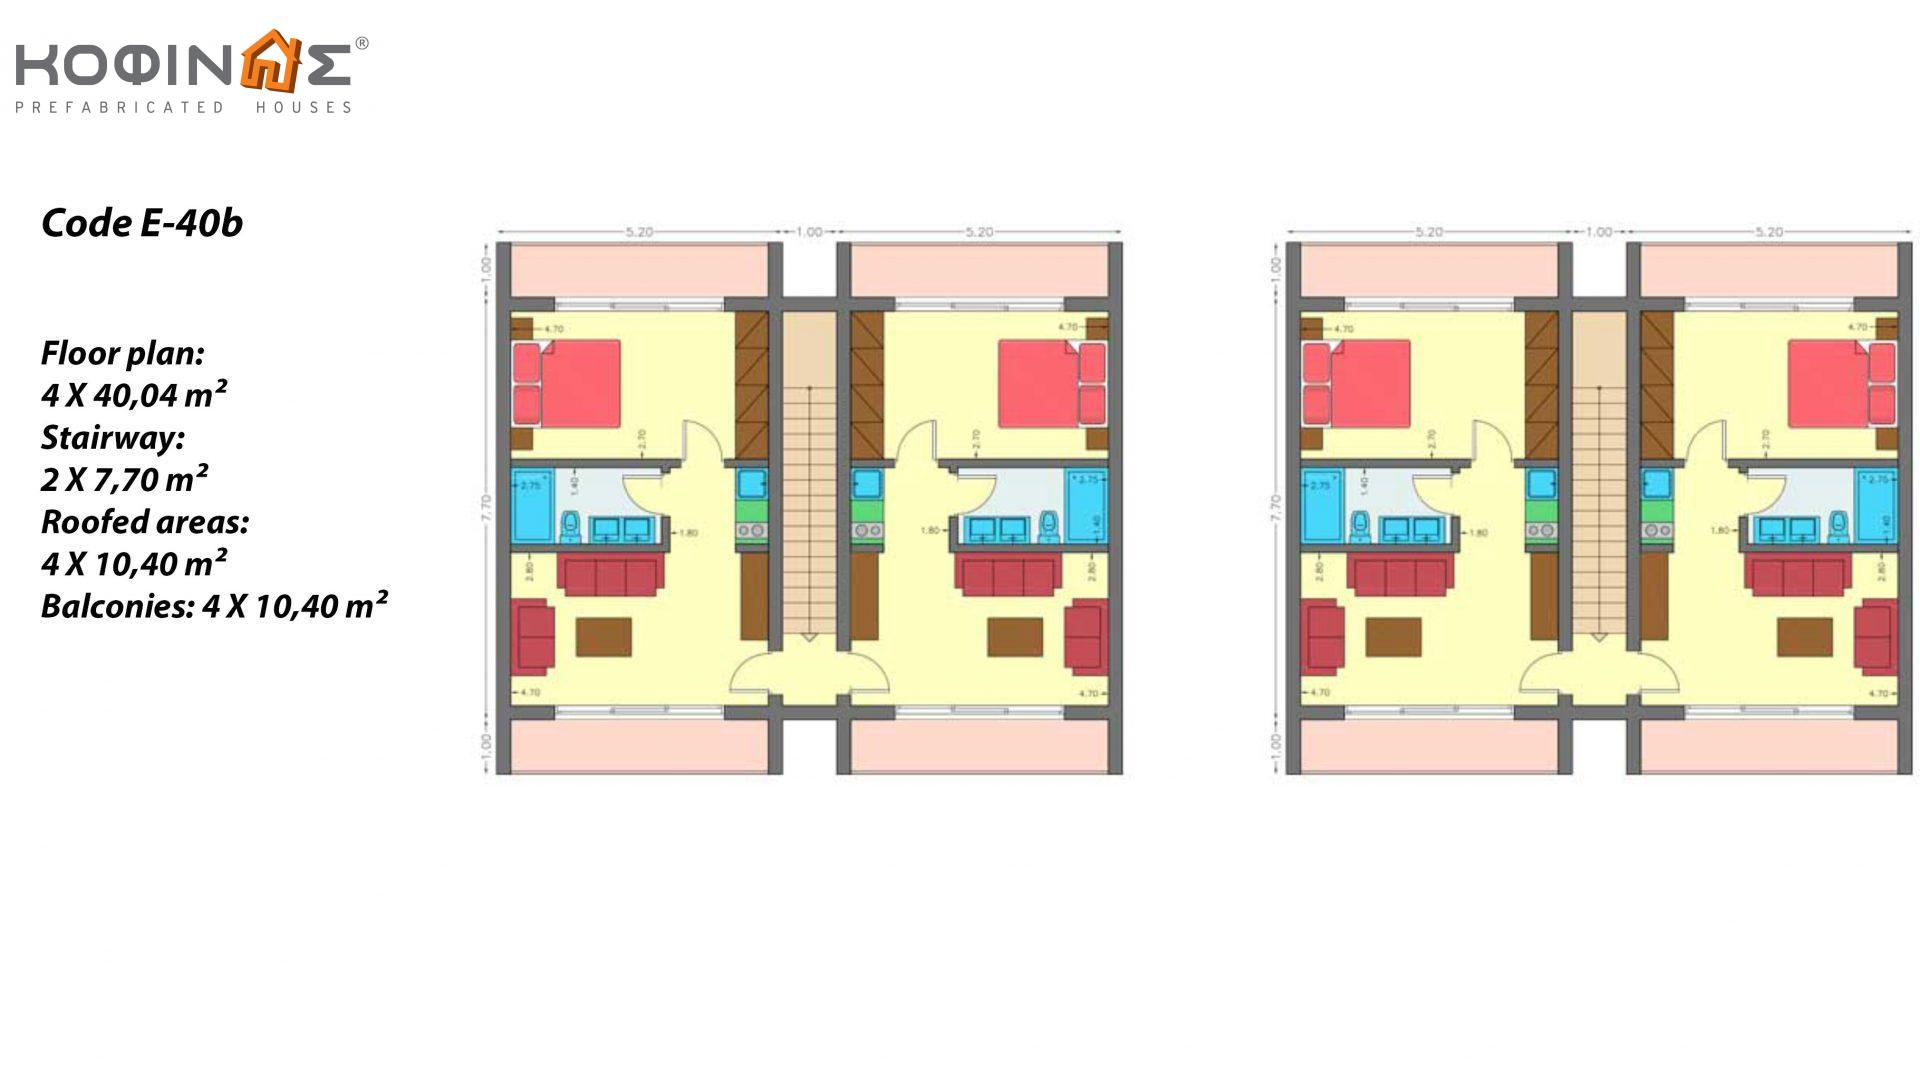 Complex of 2-story houses E-40b, total surface of houses 8×40,04 & staircases 4×7,70 = 351,12 m²,roofed areas 83.20 m²,balcony 41.60 m²